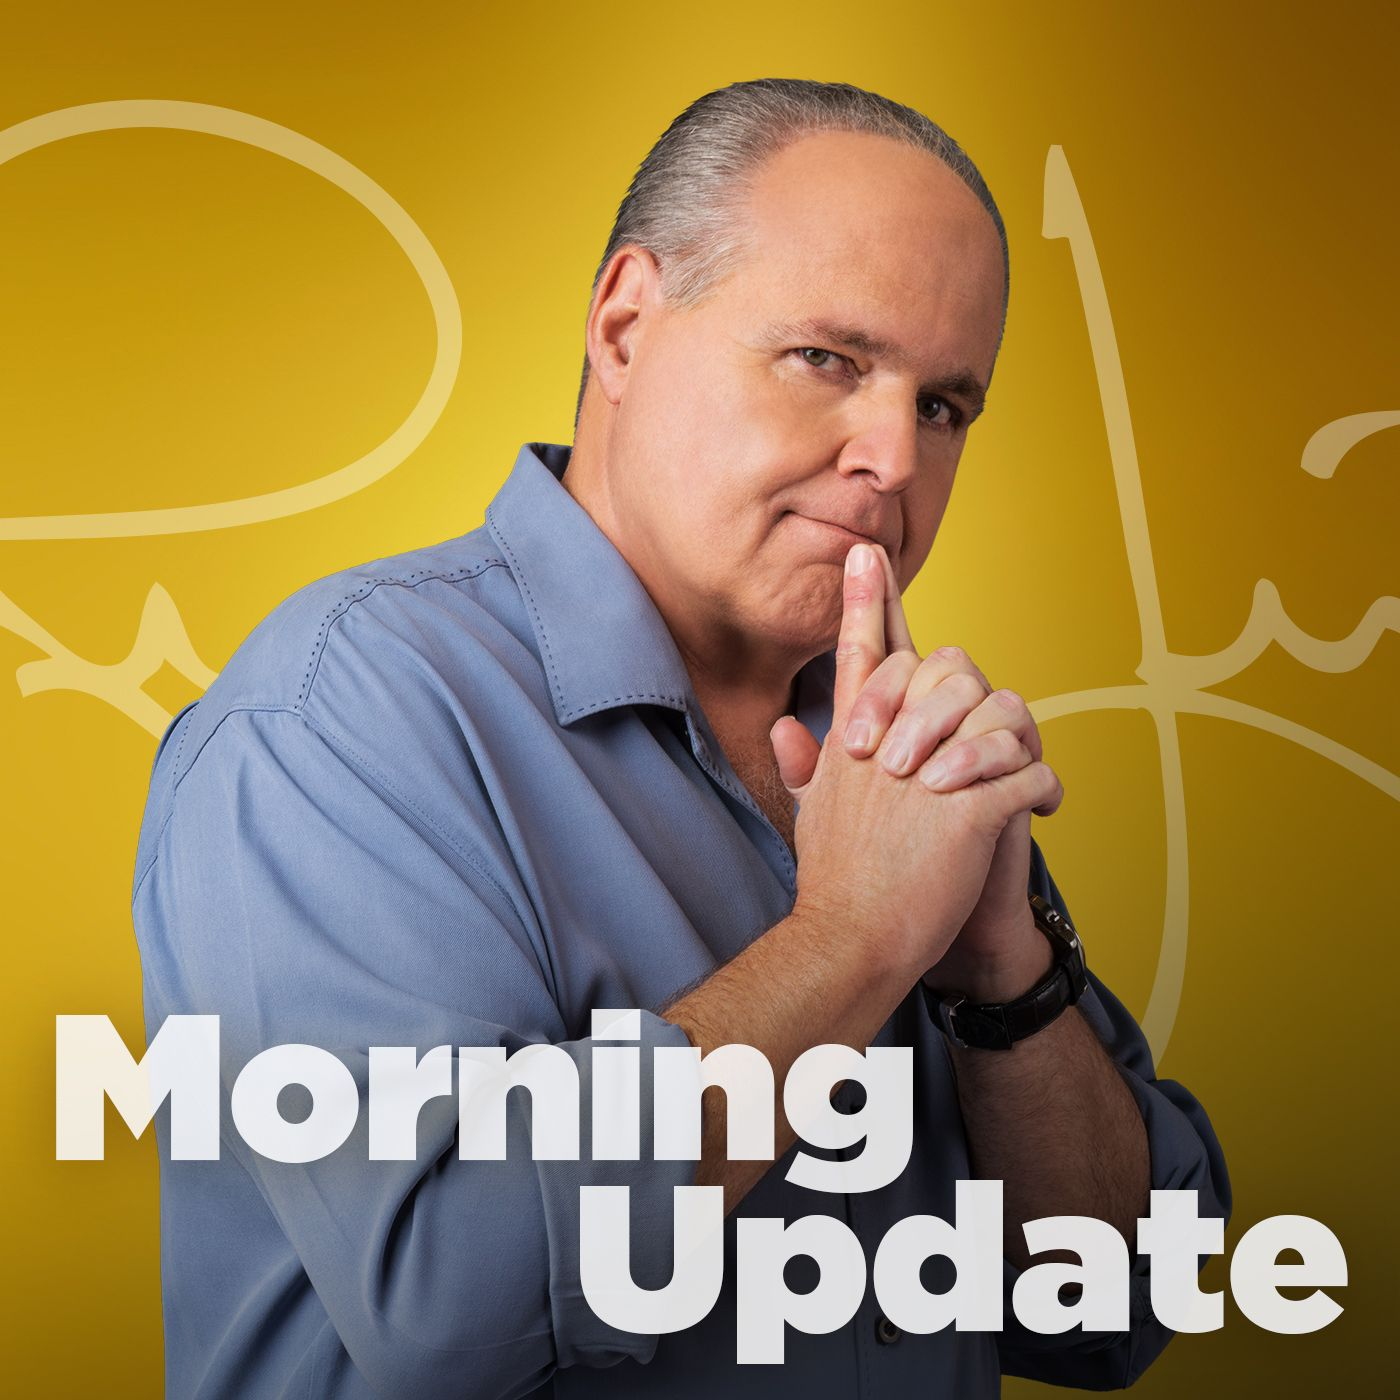 Rush Limbaugh Jul 18, 2019